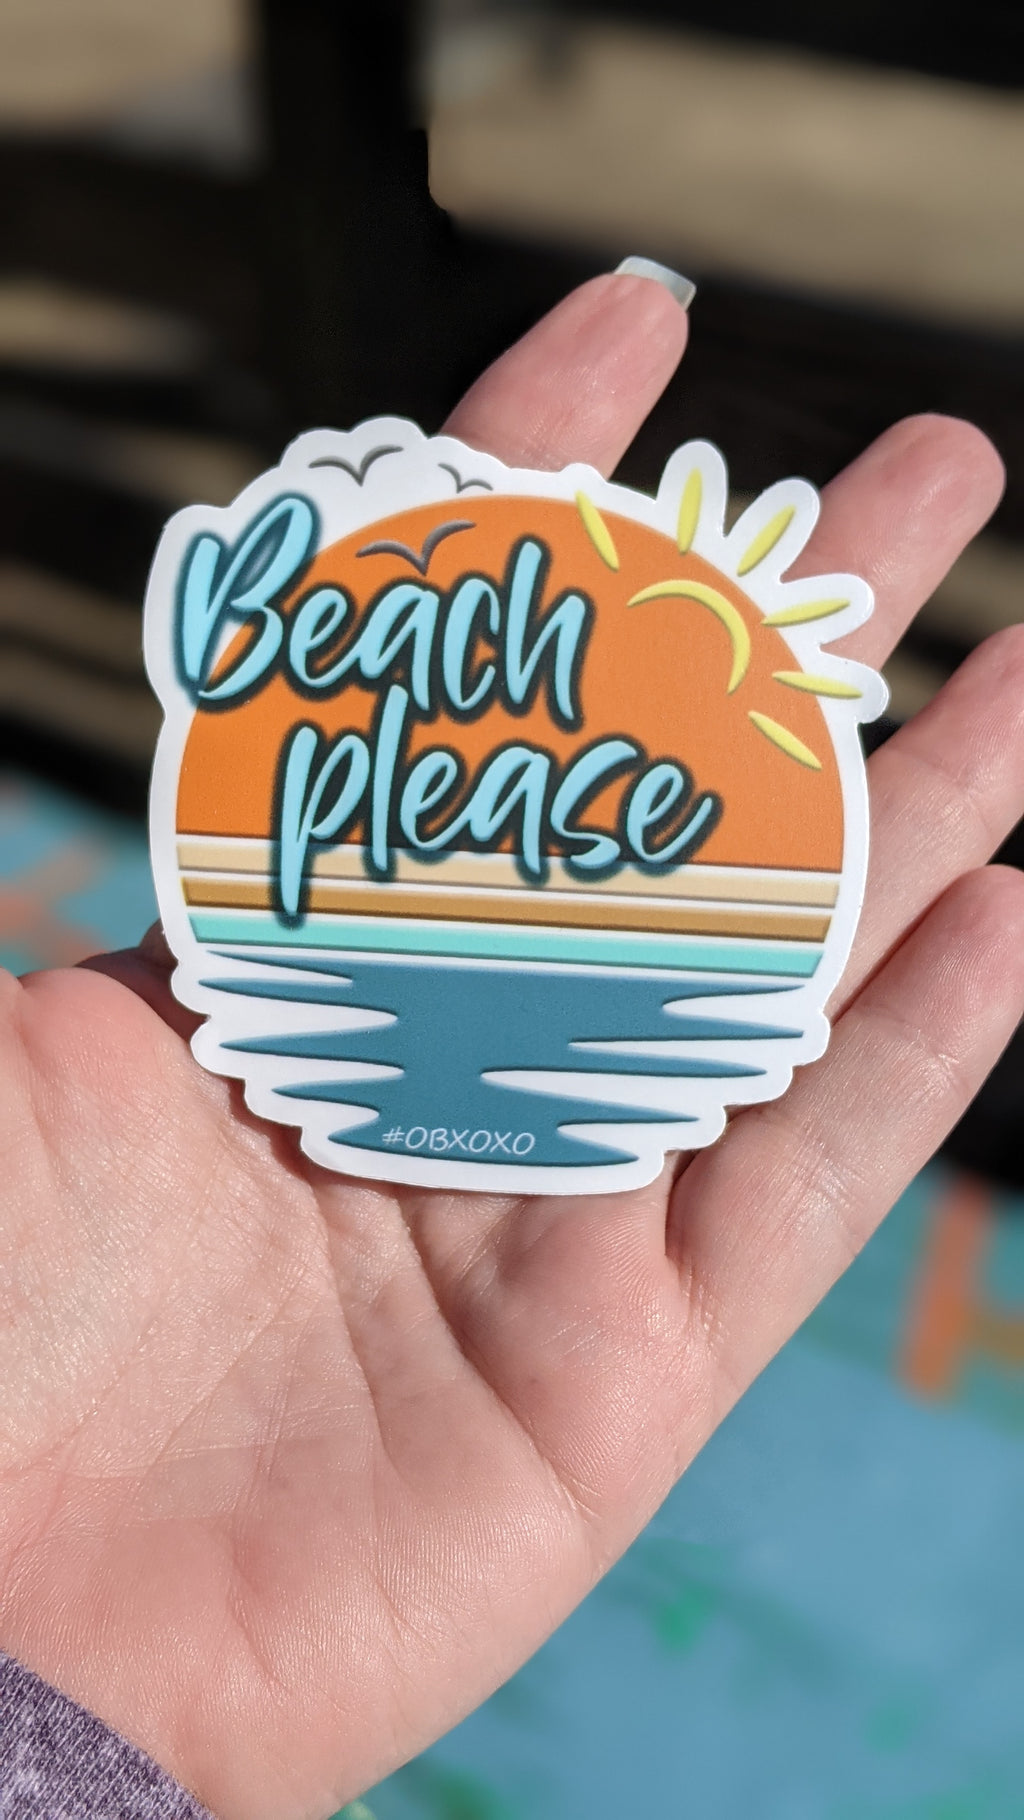 New Beach Please Vinyl Sticker 3in